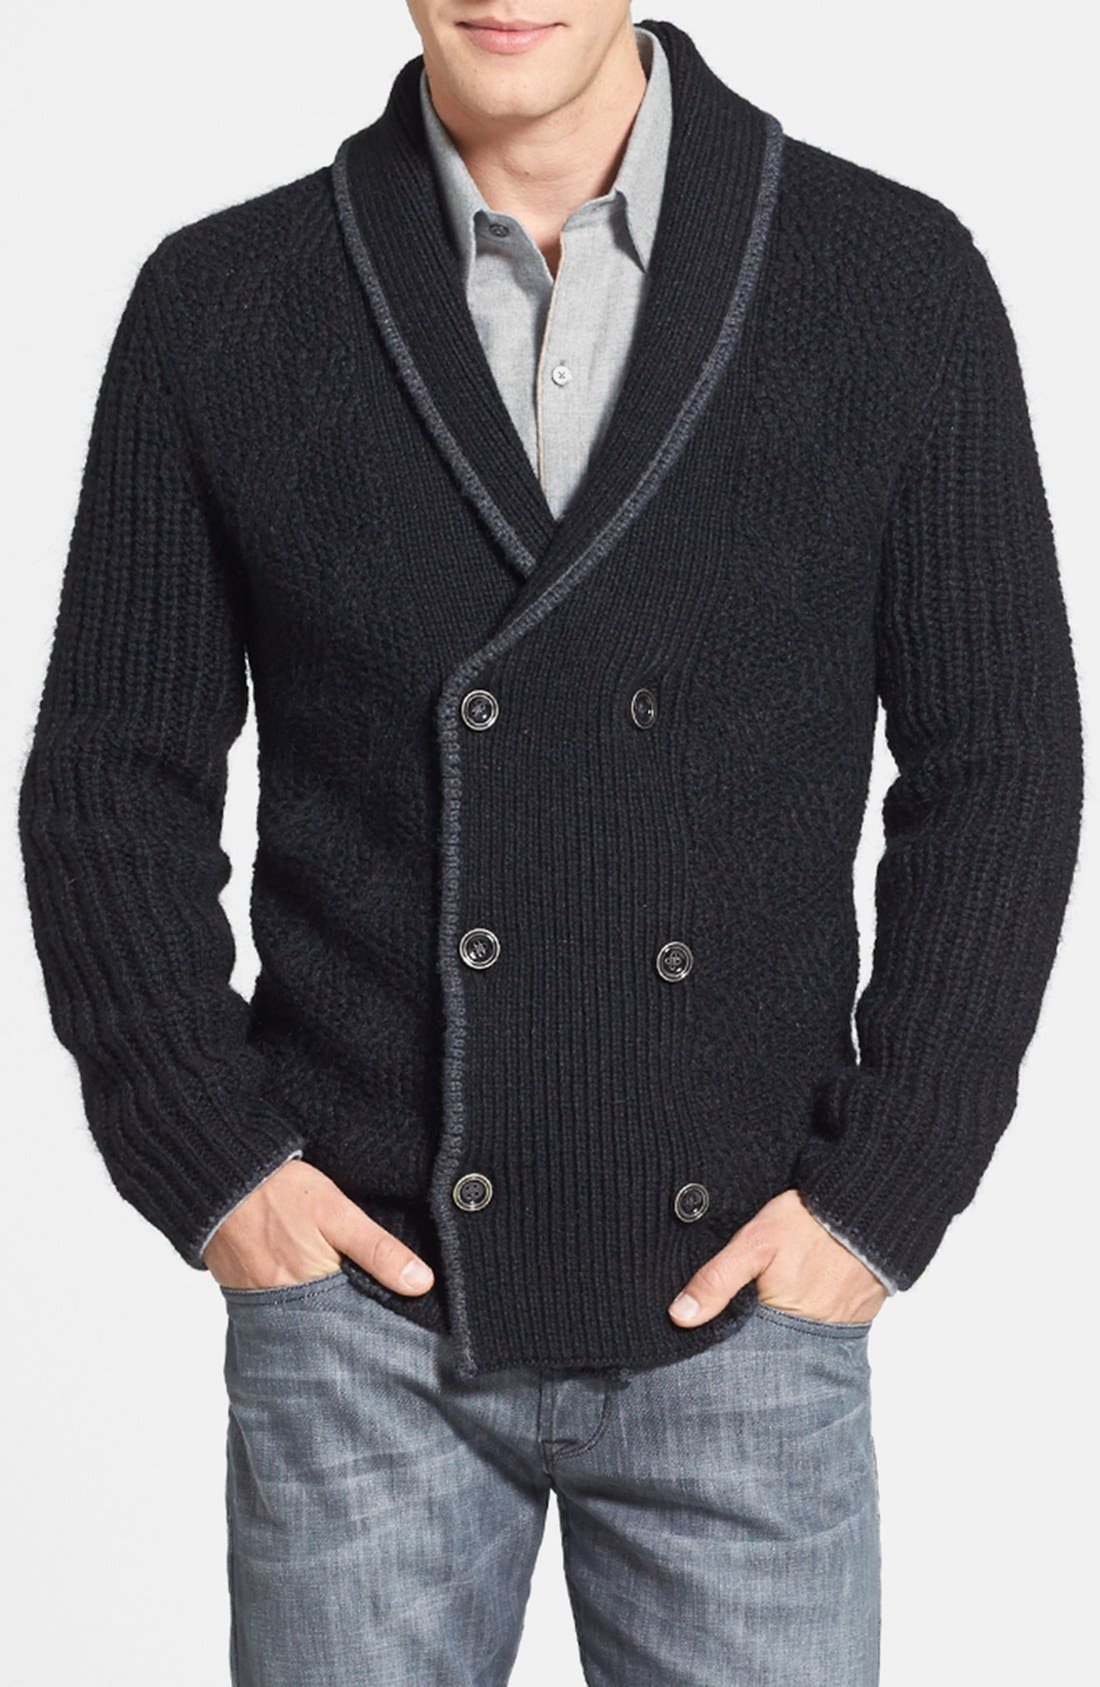 Main Image - Tommy Bahama 'Hudson Square' Regular Fit Cardigan